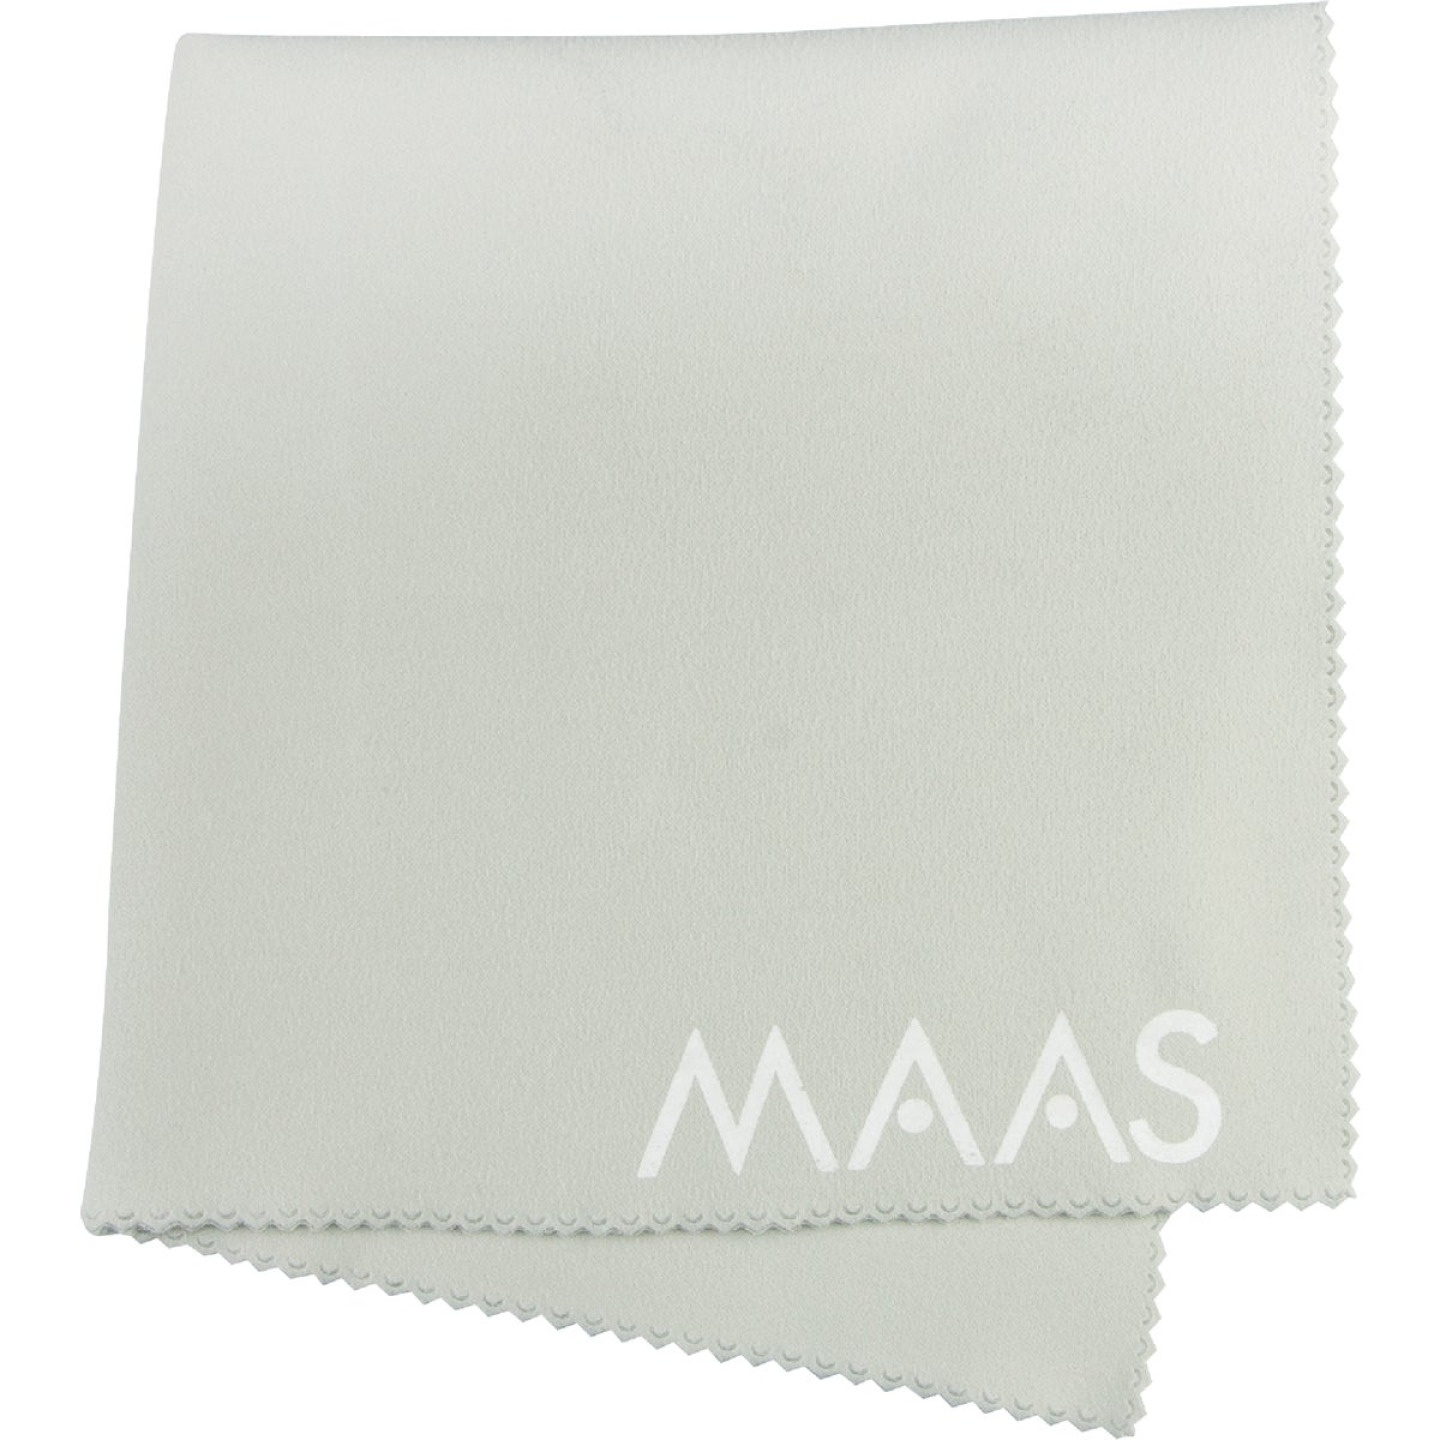 Maas Polishing Cloth Image 1